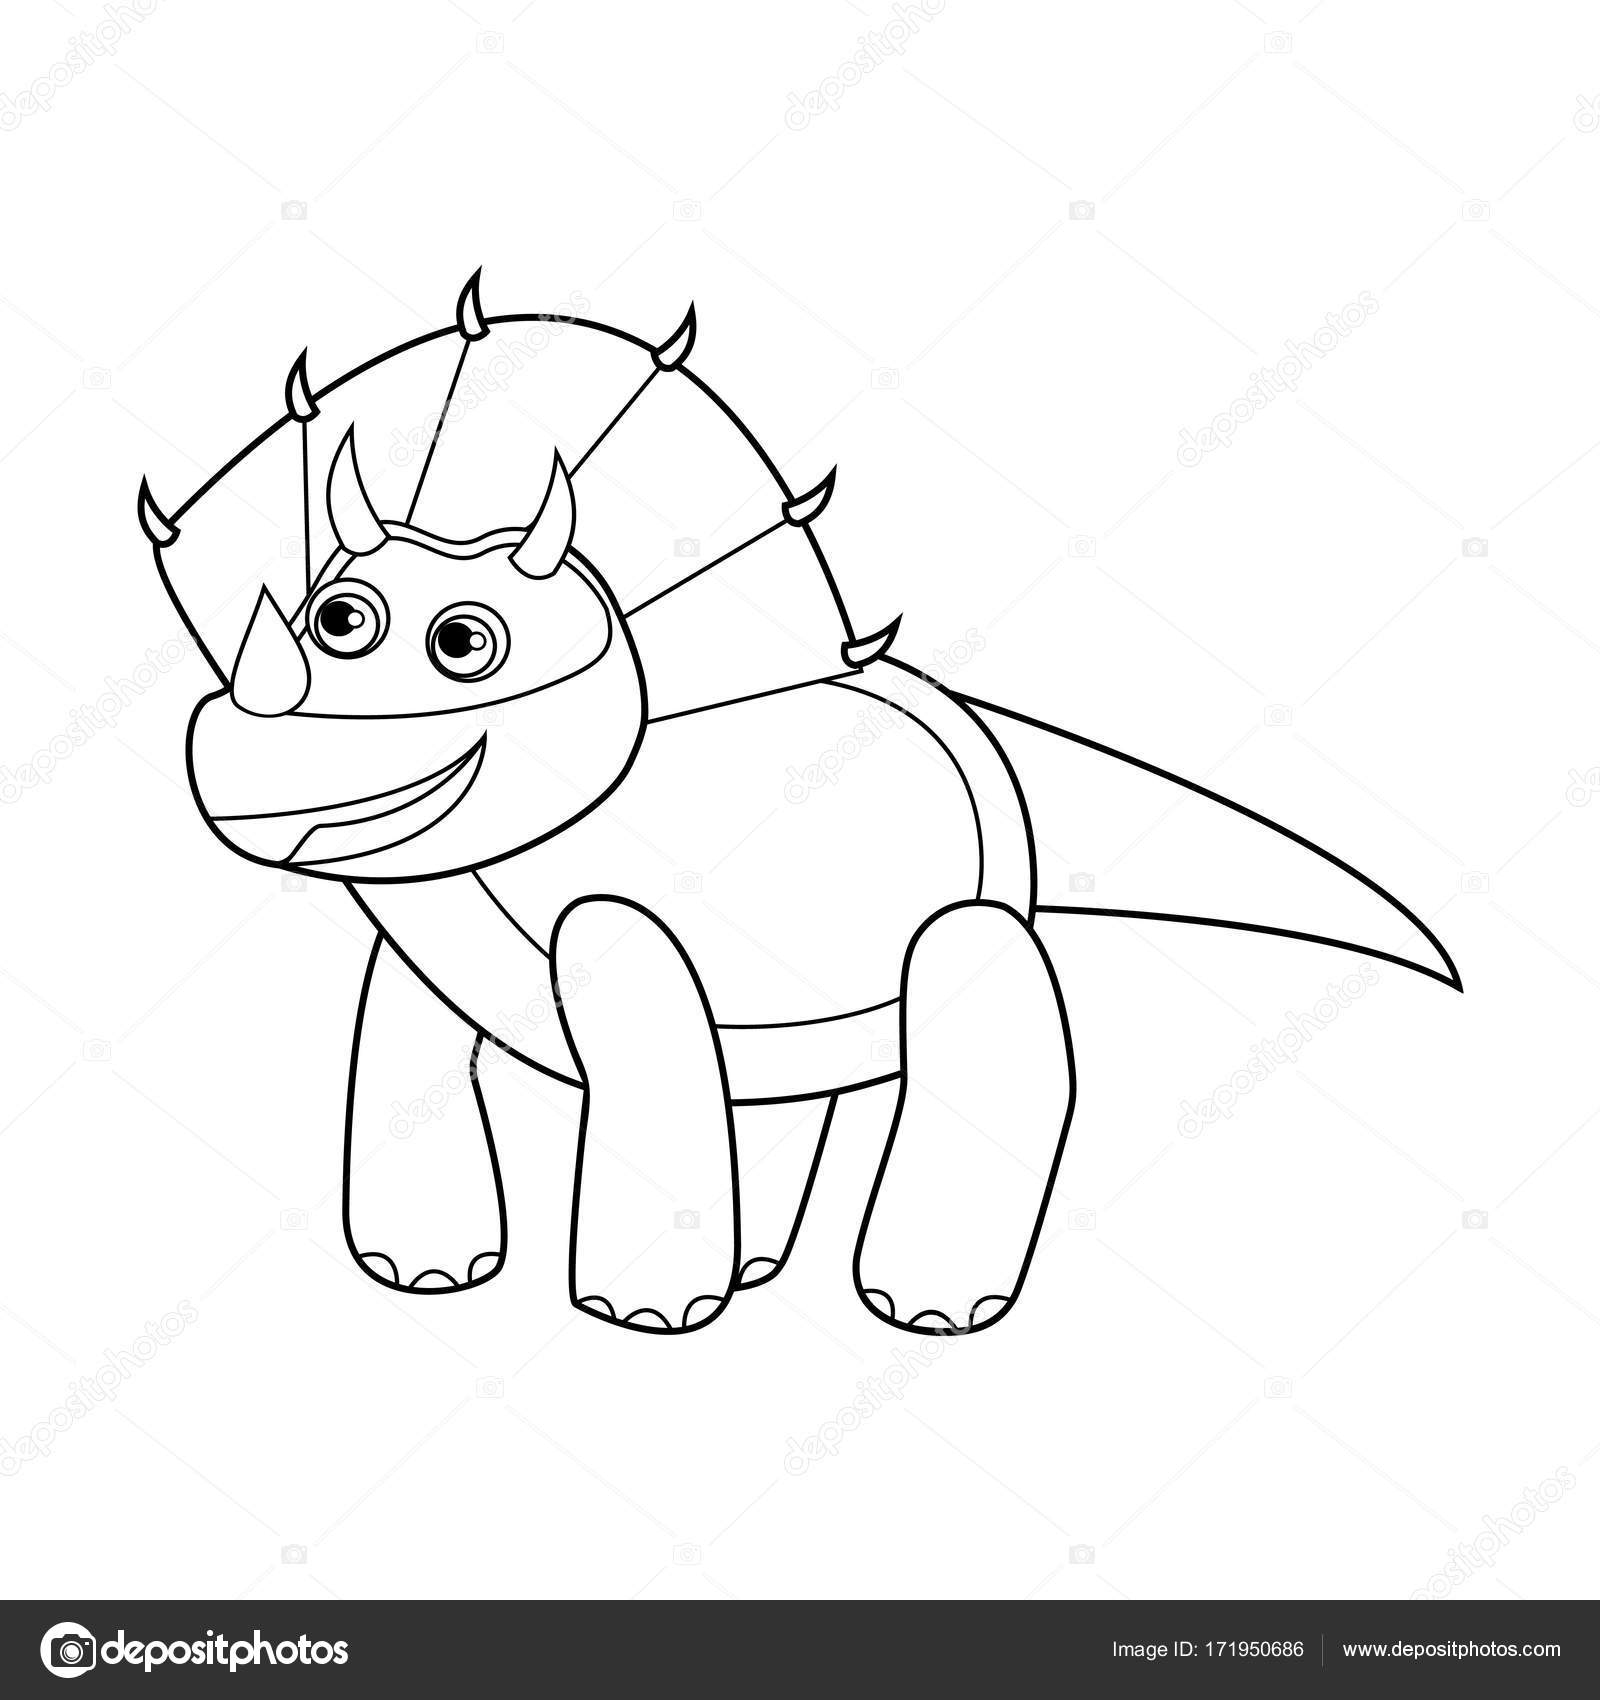 1600x1700 Dinosaur Outline Cute Smiling Stock Photo